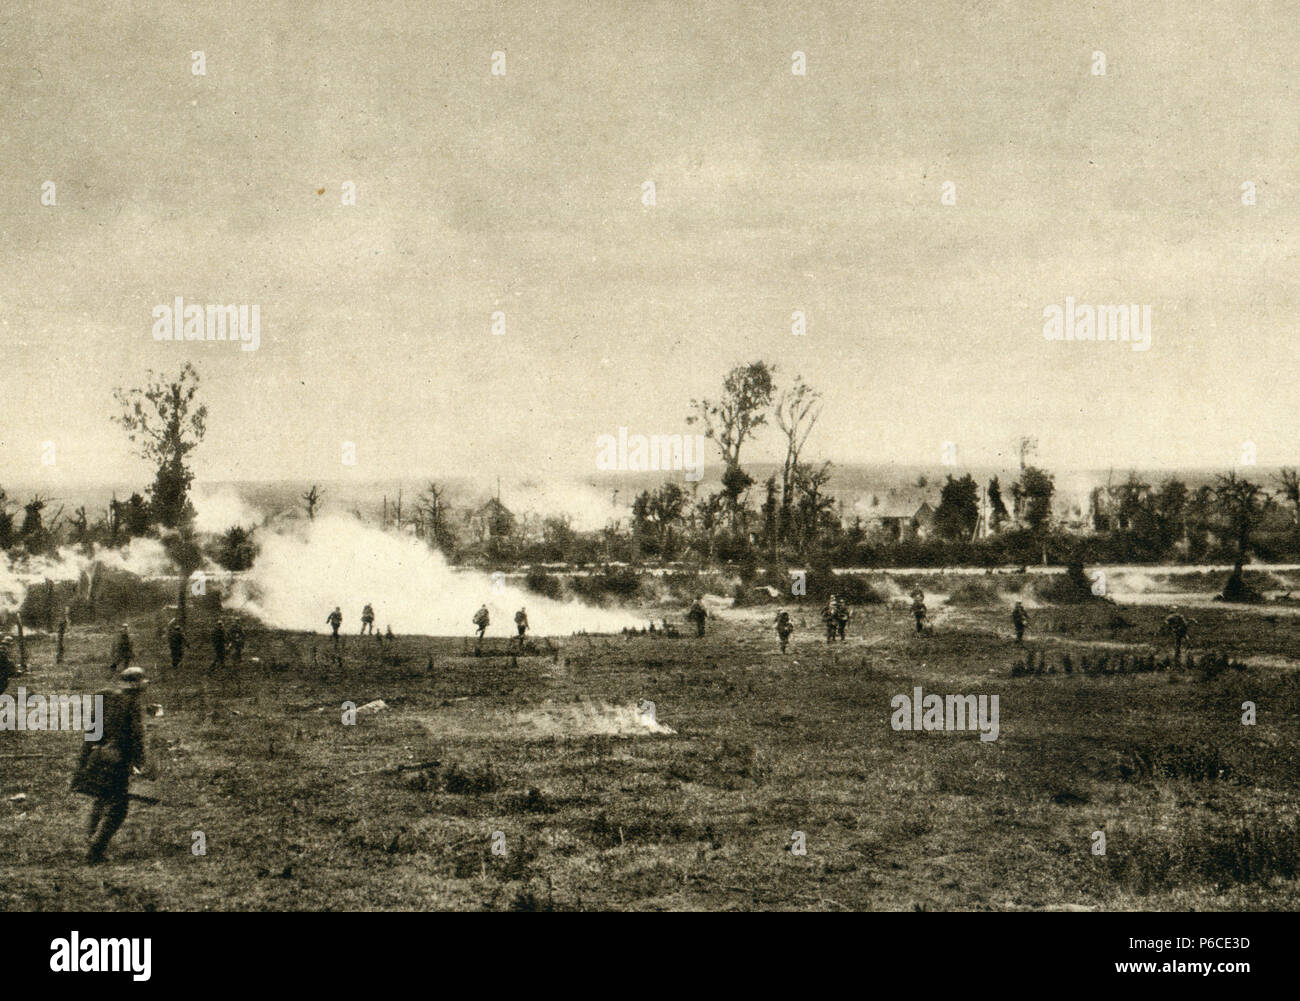 Western Front German Soldiers Stock Photos & Western Front German ...